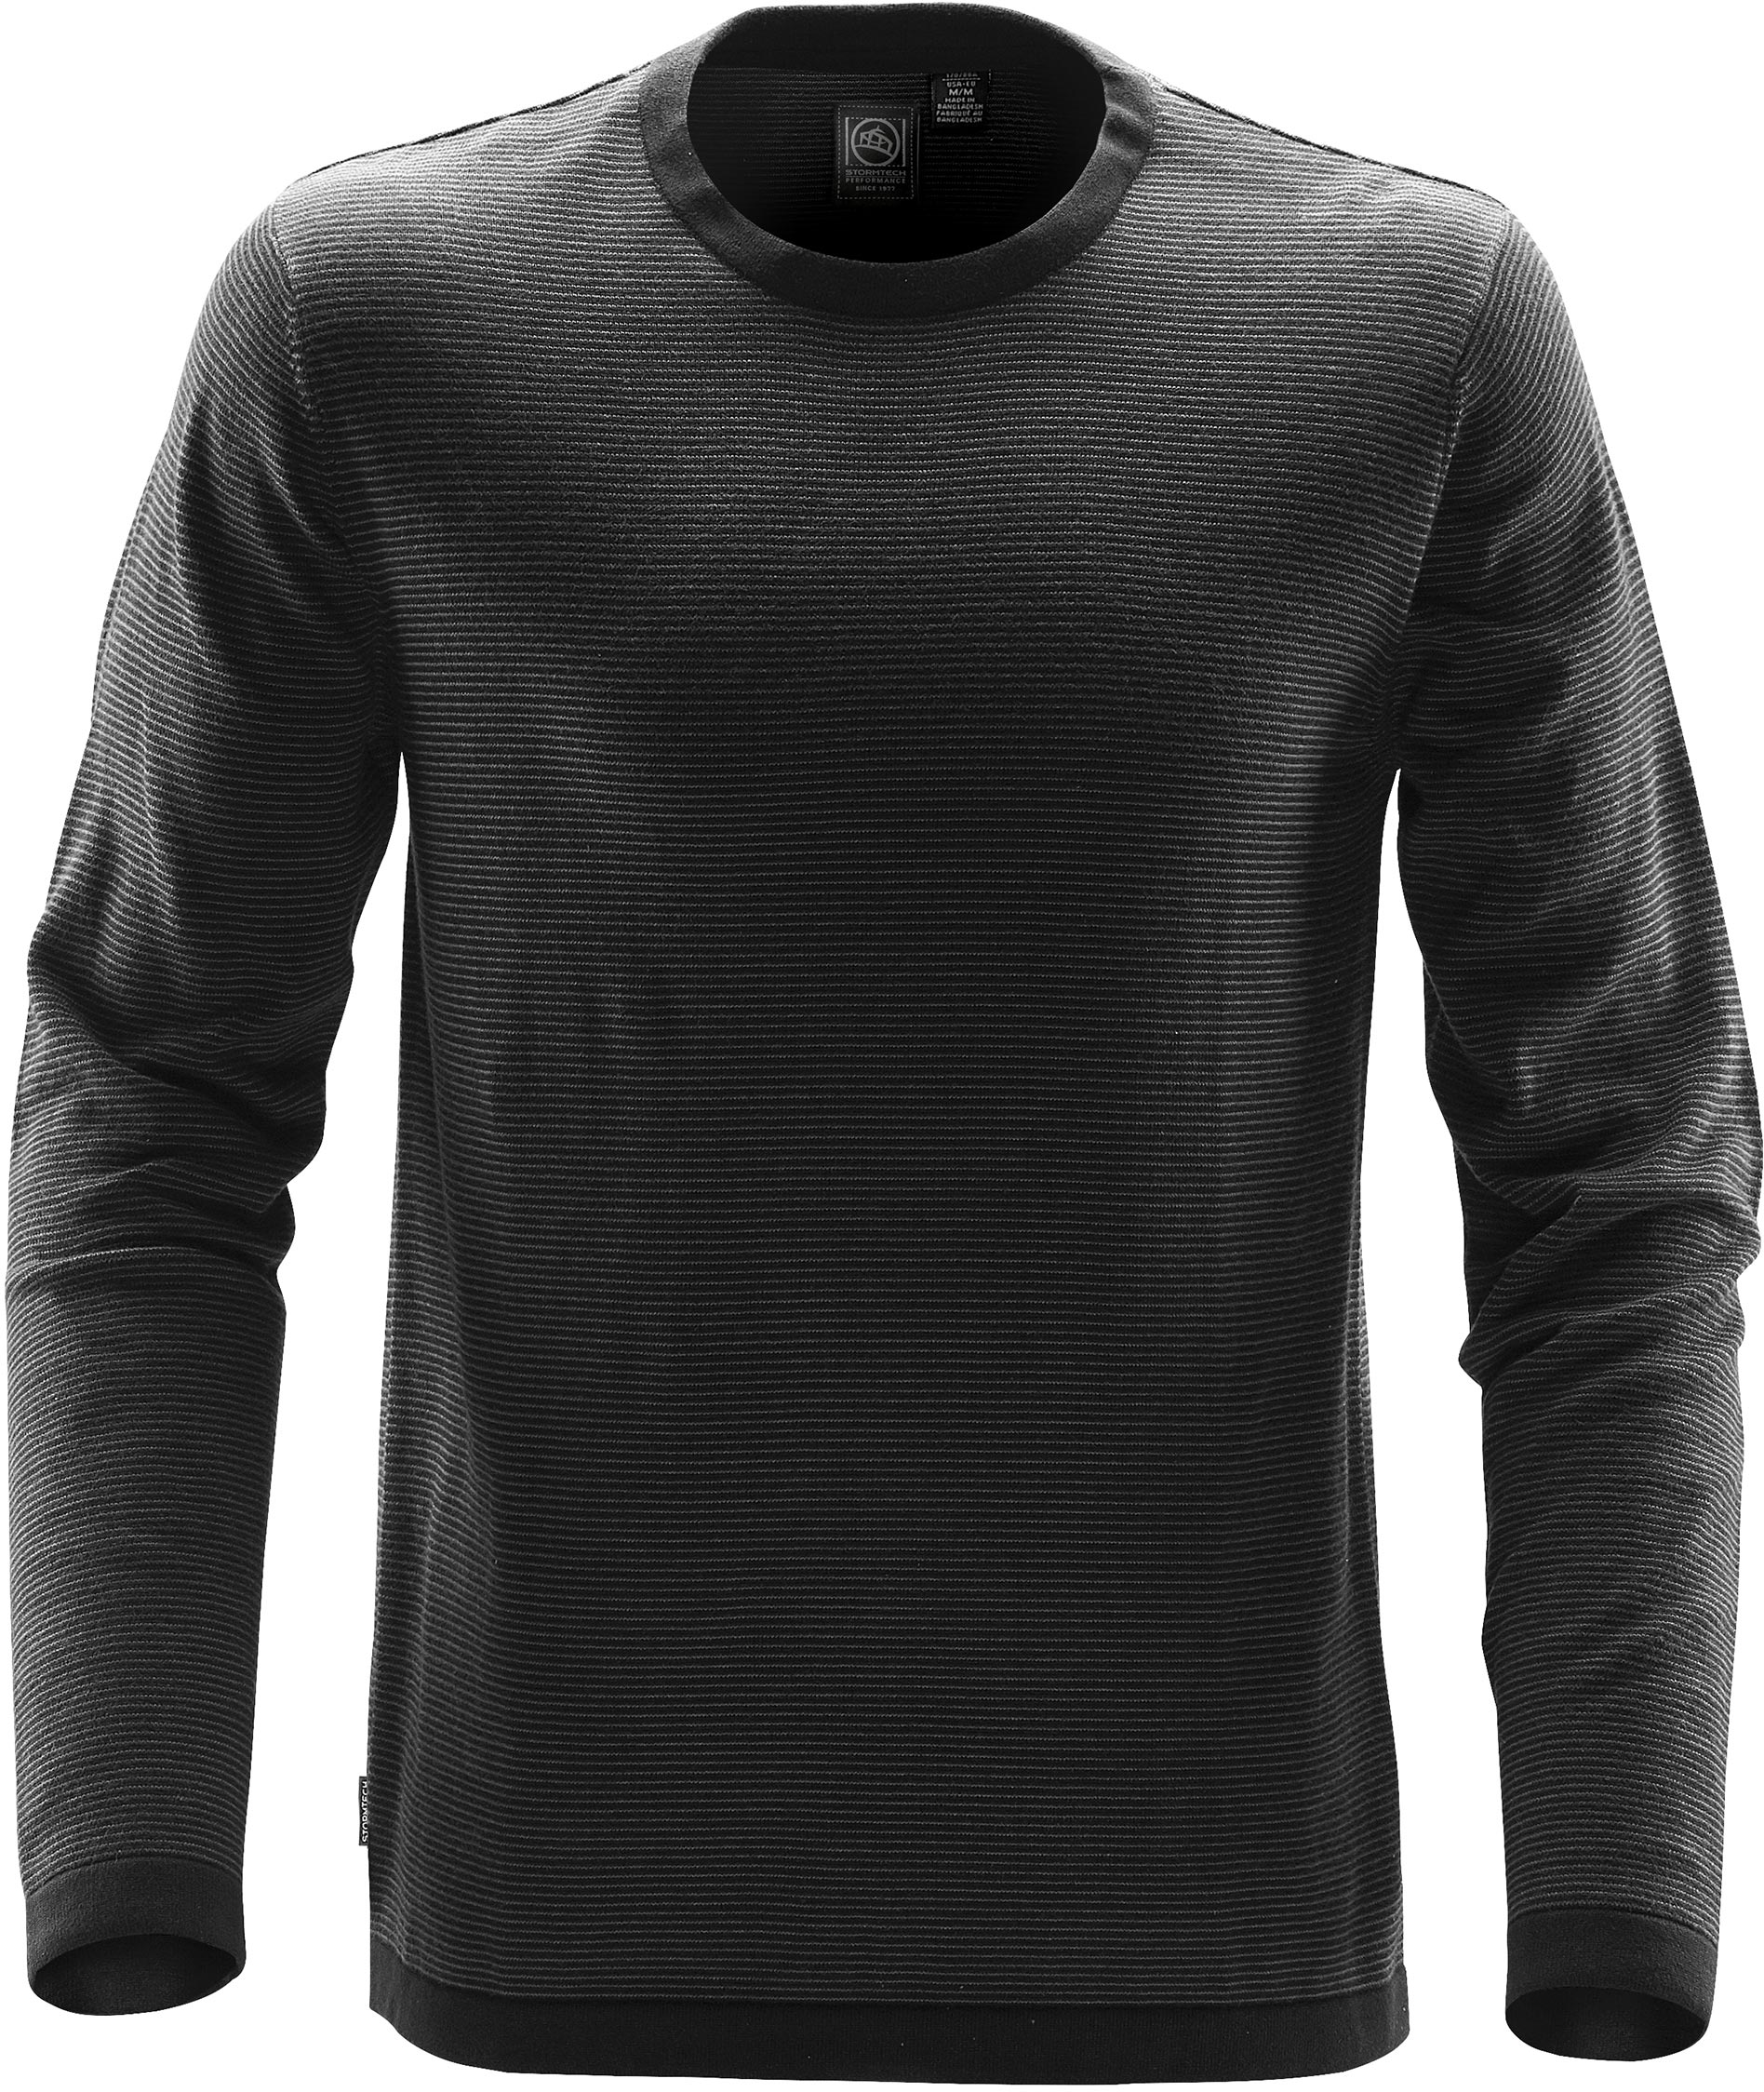 Stormtech STC-1 - Men's Horizon Sweater